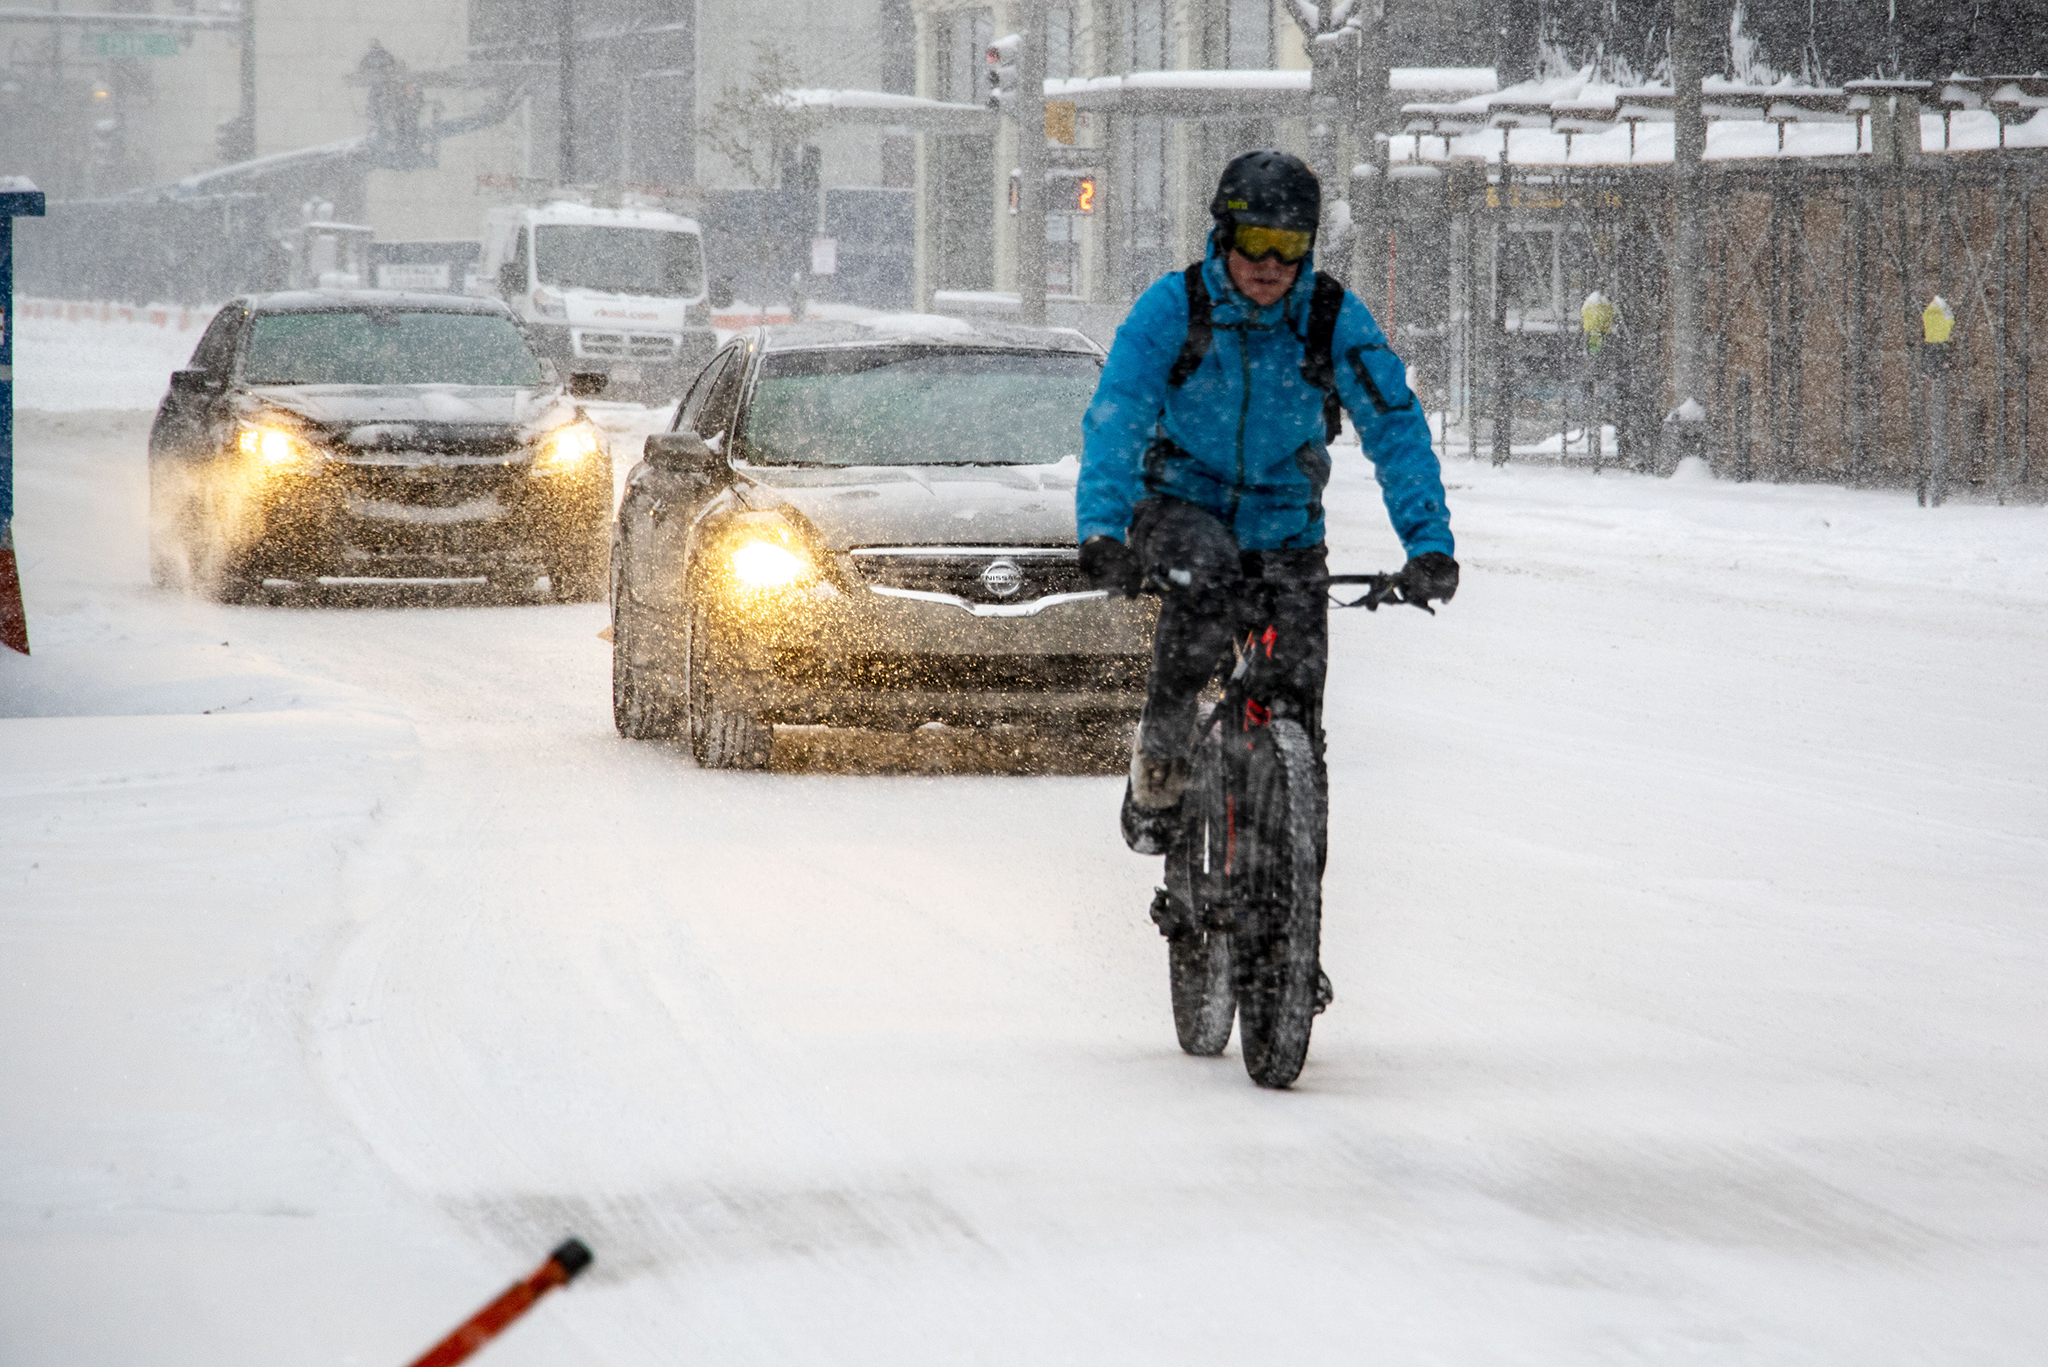 A brave man rides his bike downtown on a snowy day in Denver. Oct. 29, 2019.